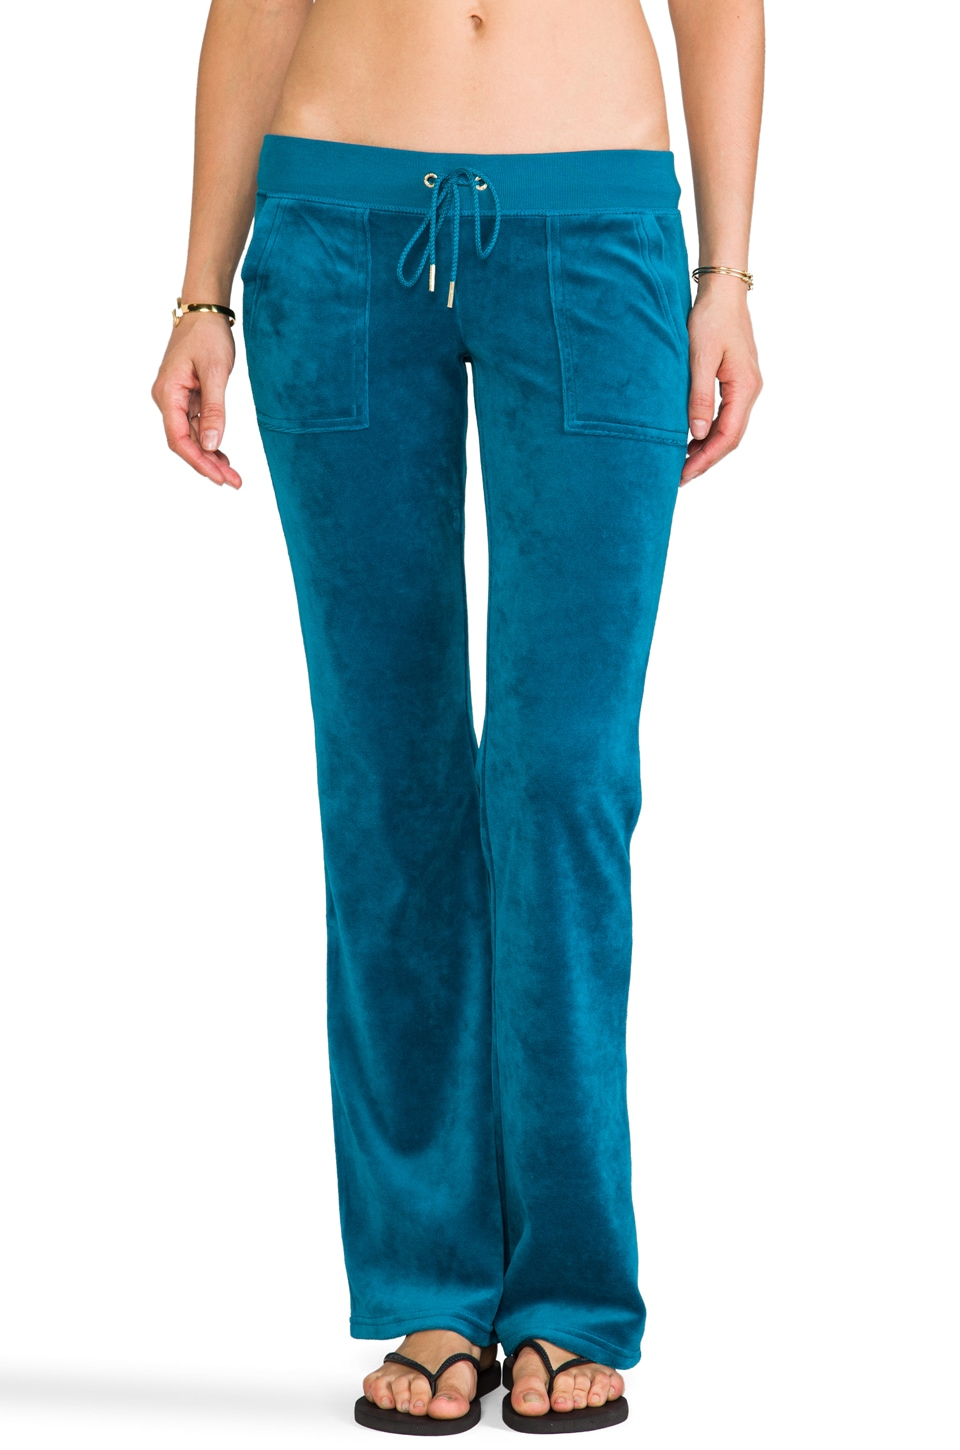 Juicy Couture J Bling Bootcut Pant in Jade